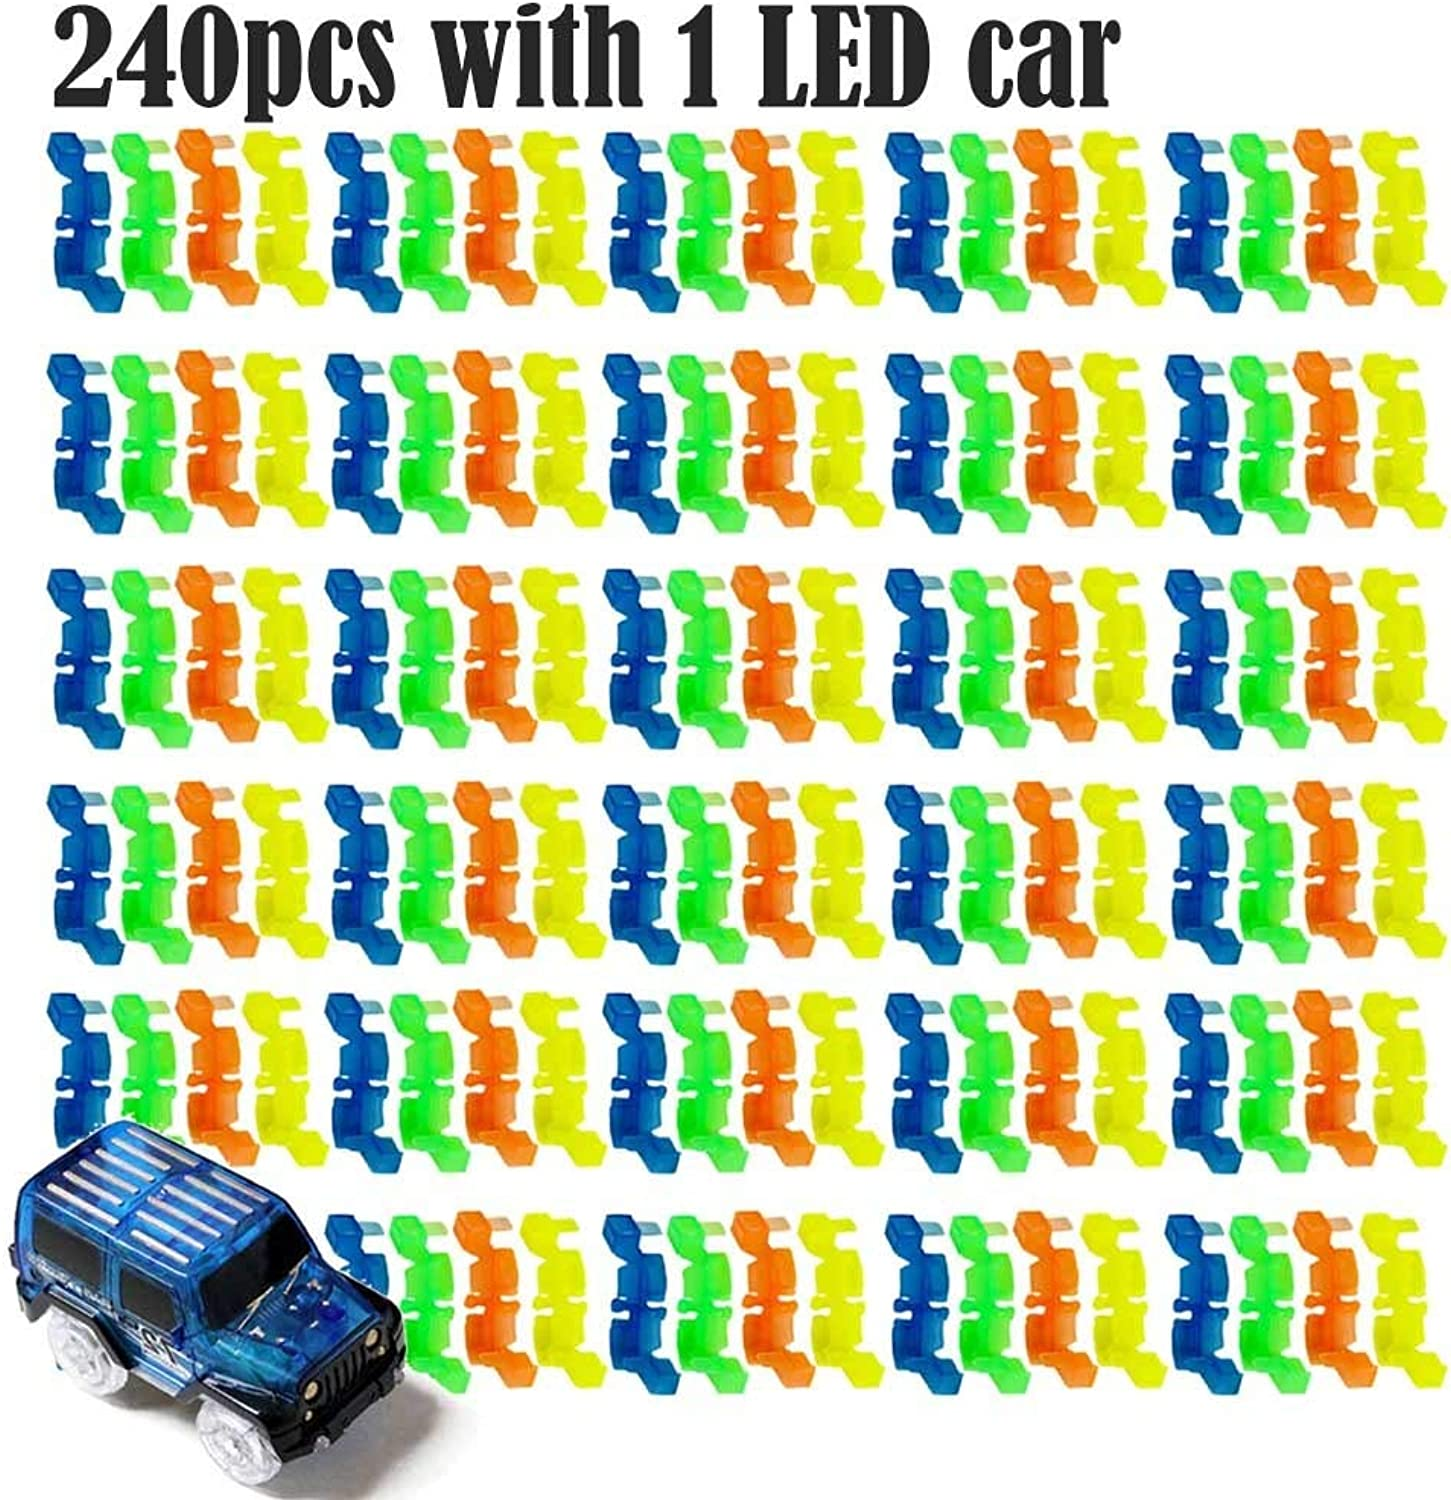 Generic DIY Toys for Flexible Track Electronics Racing Car Toys with Flashing Lights Model Car Toys for Kid Flash in The Dark 240pcs with 1 car